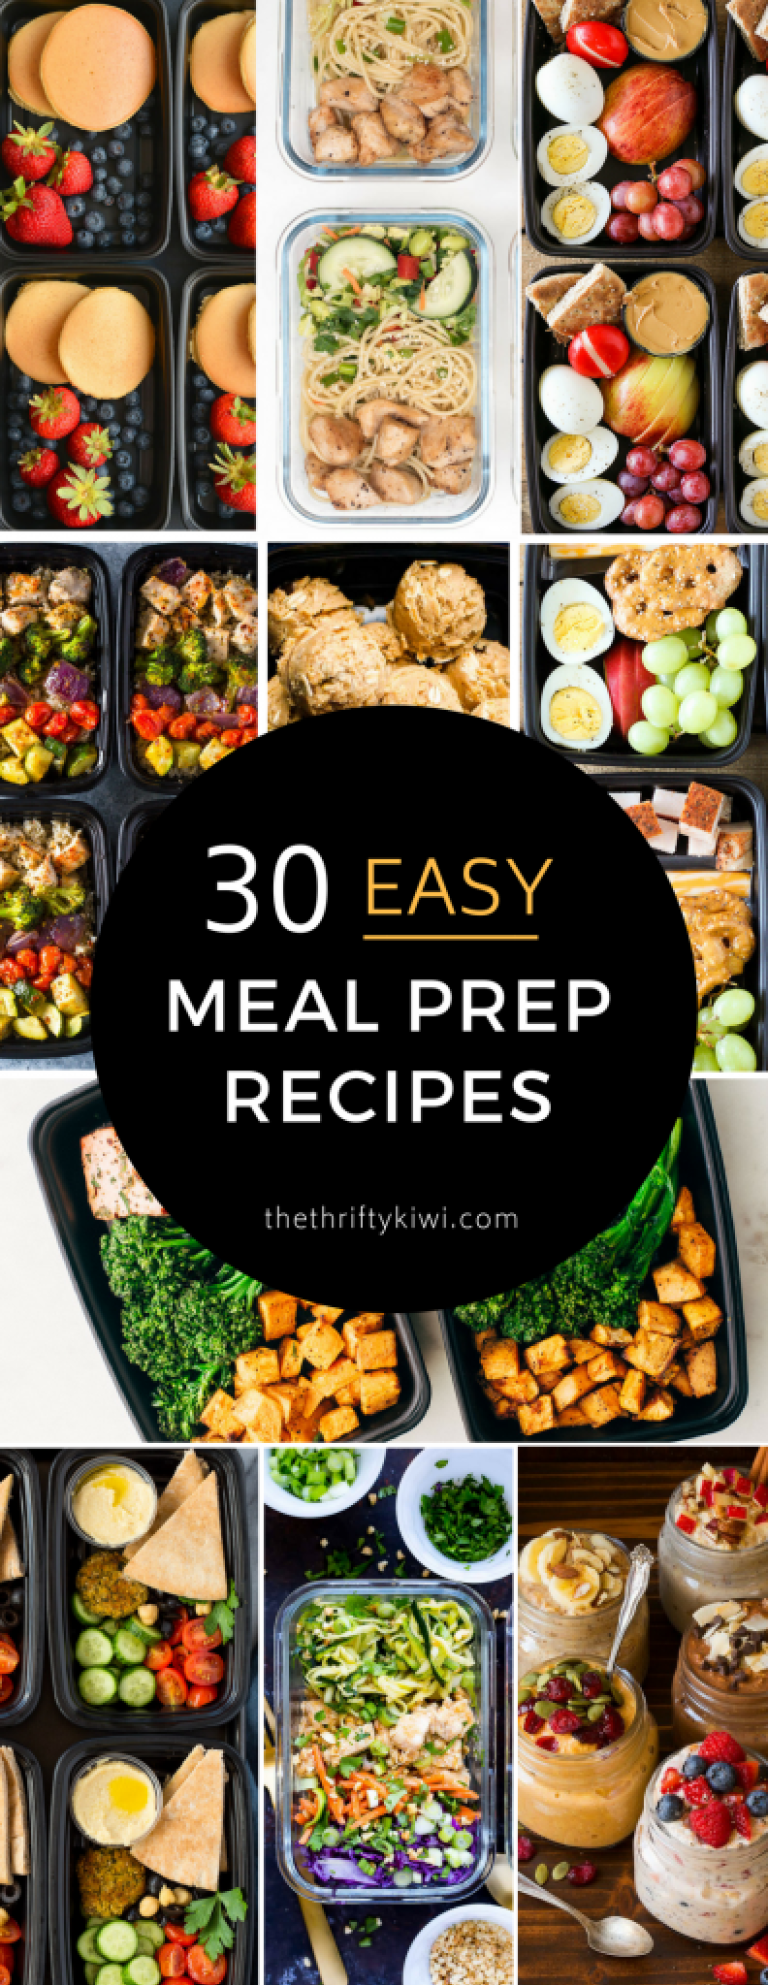 30 Cheap And Healthy Meal Prep Recipes The Thrifty Kiwi Cheap Healthy Meals Cheap Meal Prep Breakfast Meal Prep